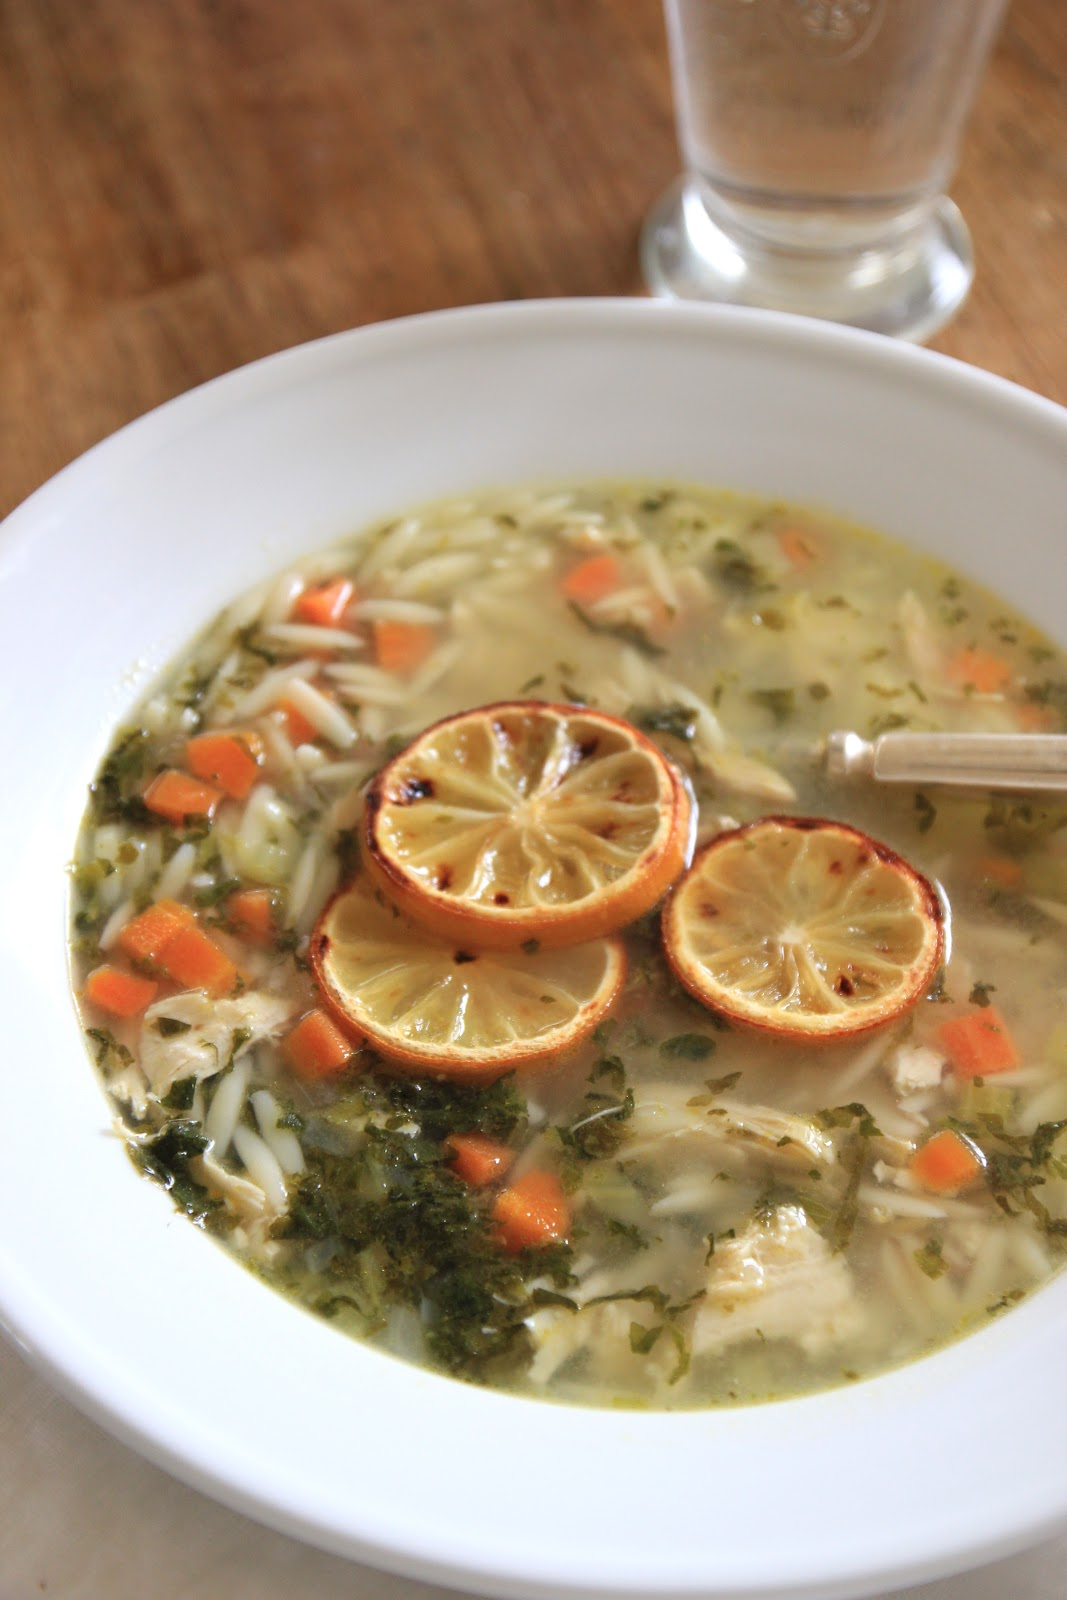 ... ! Here is link to the recipe for Lemon Chicken Orzo Soup on her blog